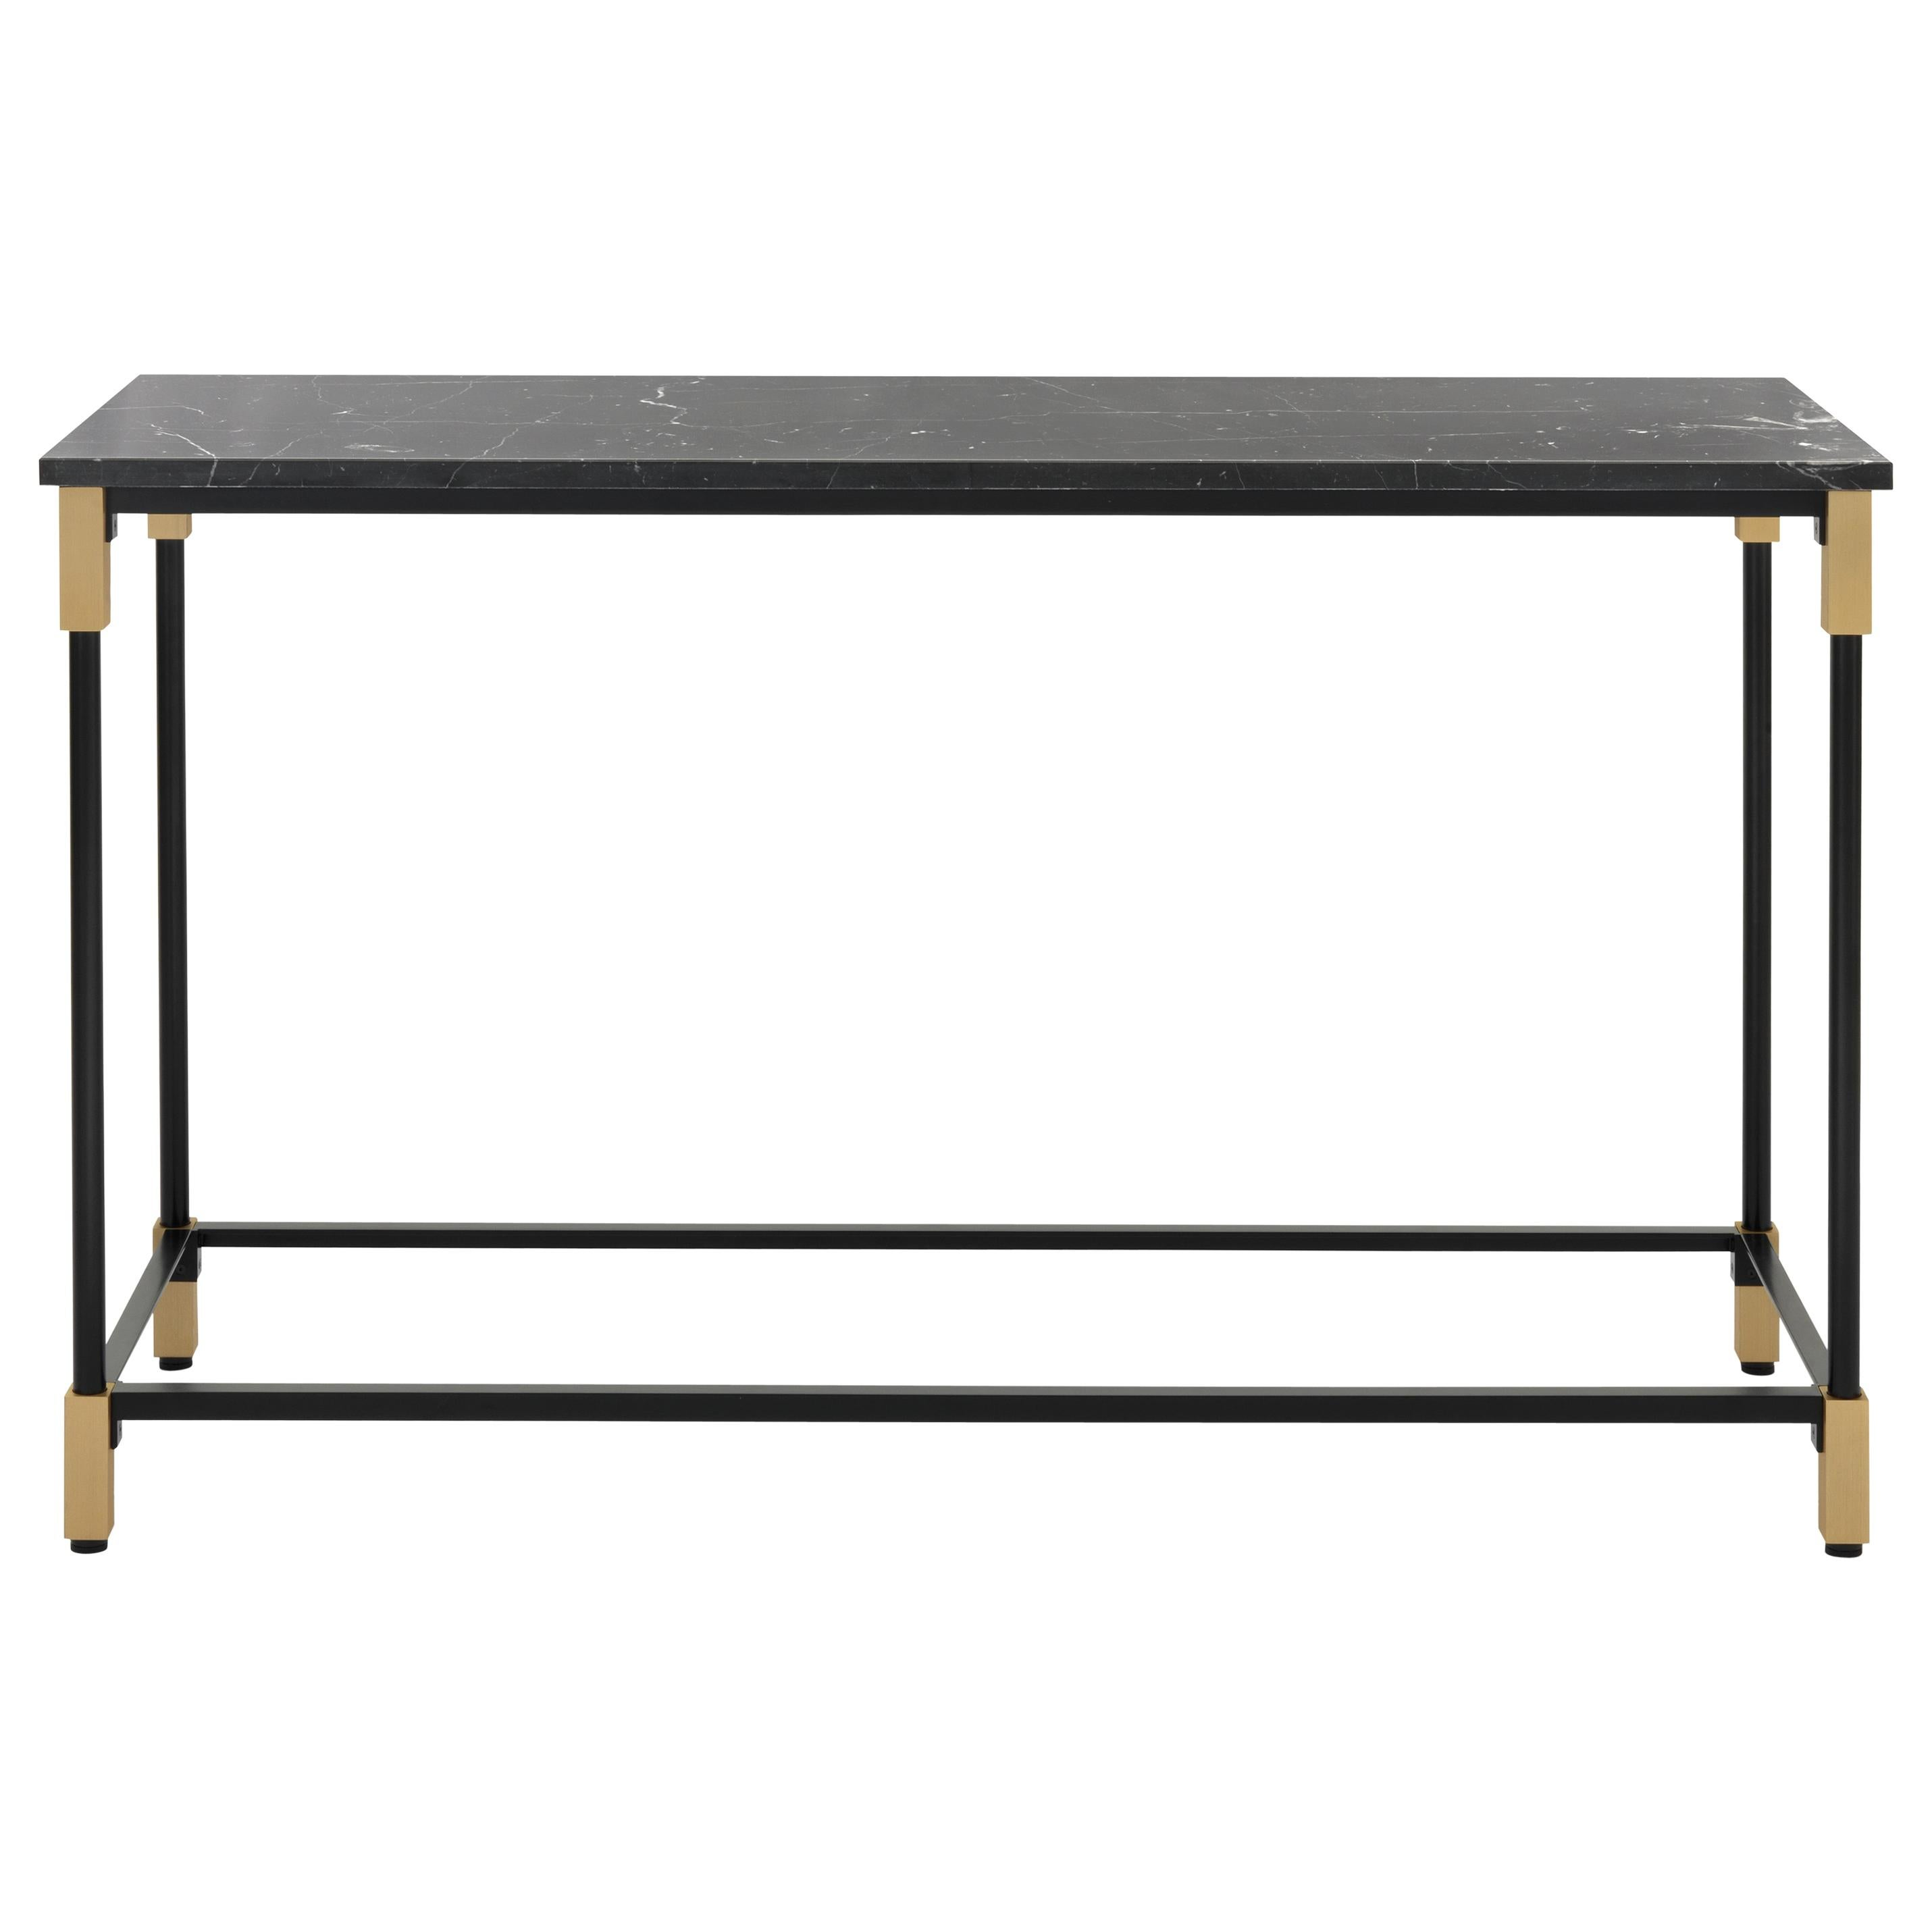 Arflex Match Console Table with Marquinia Marble Top by Bernhardt & Vella